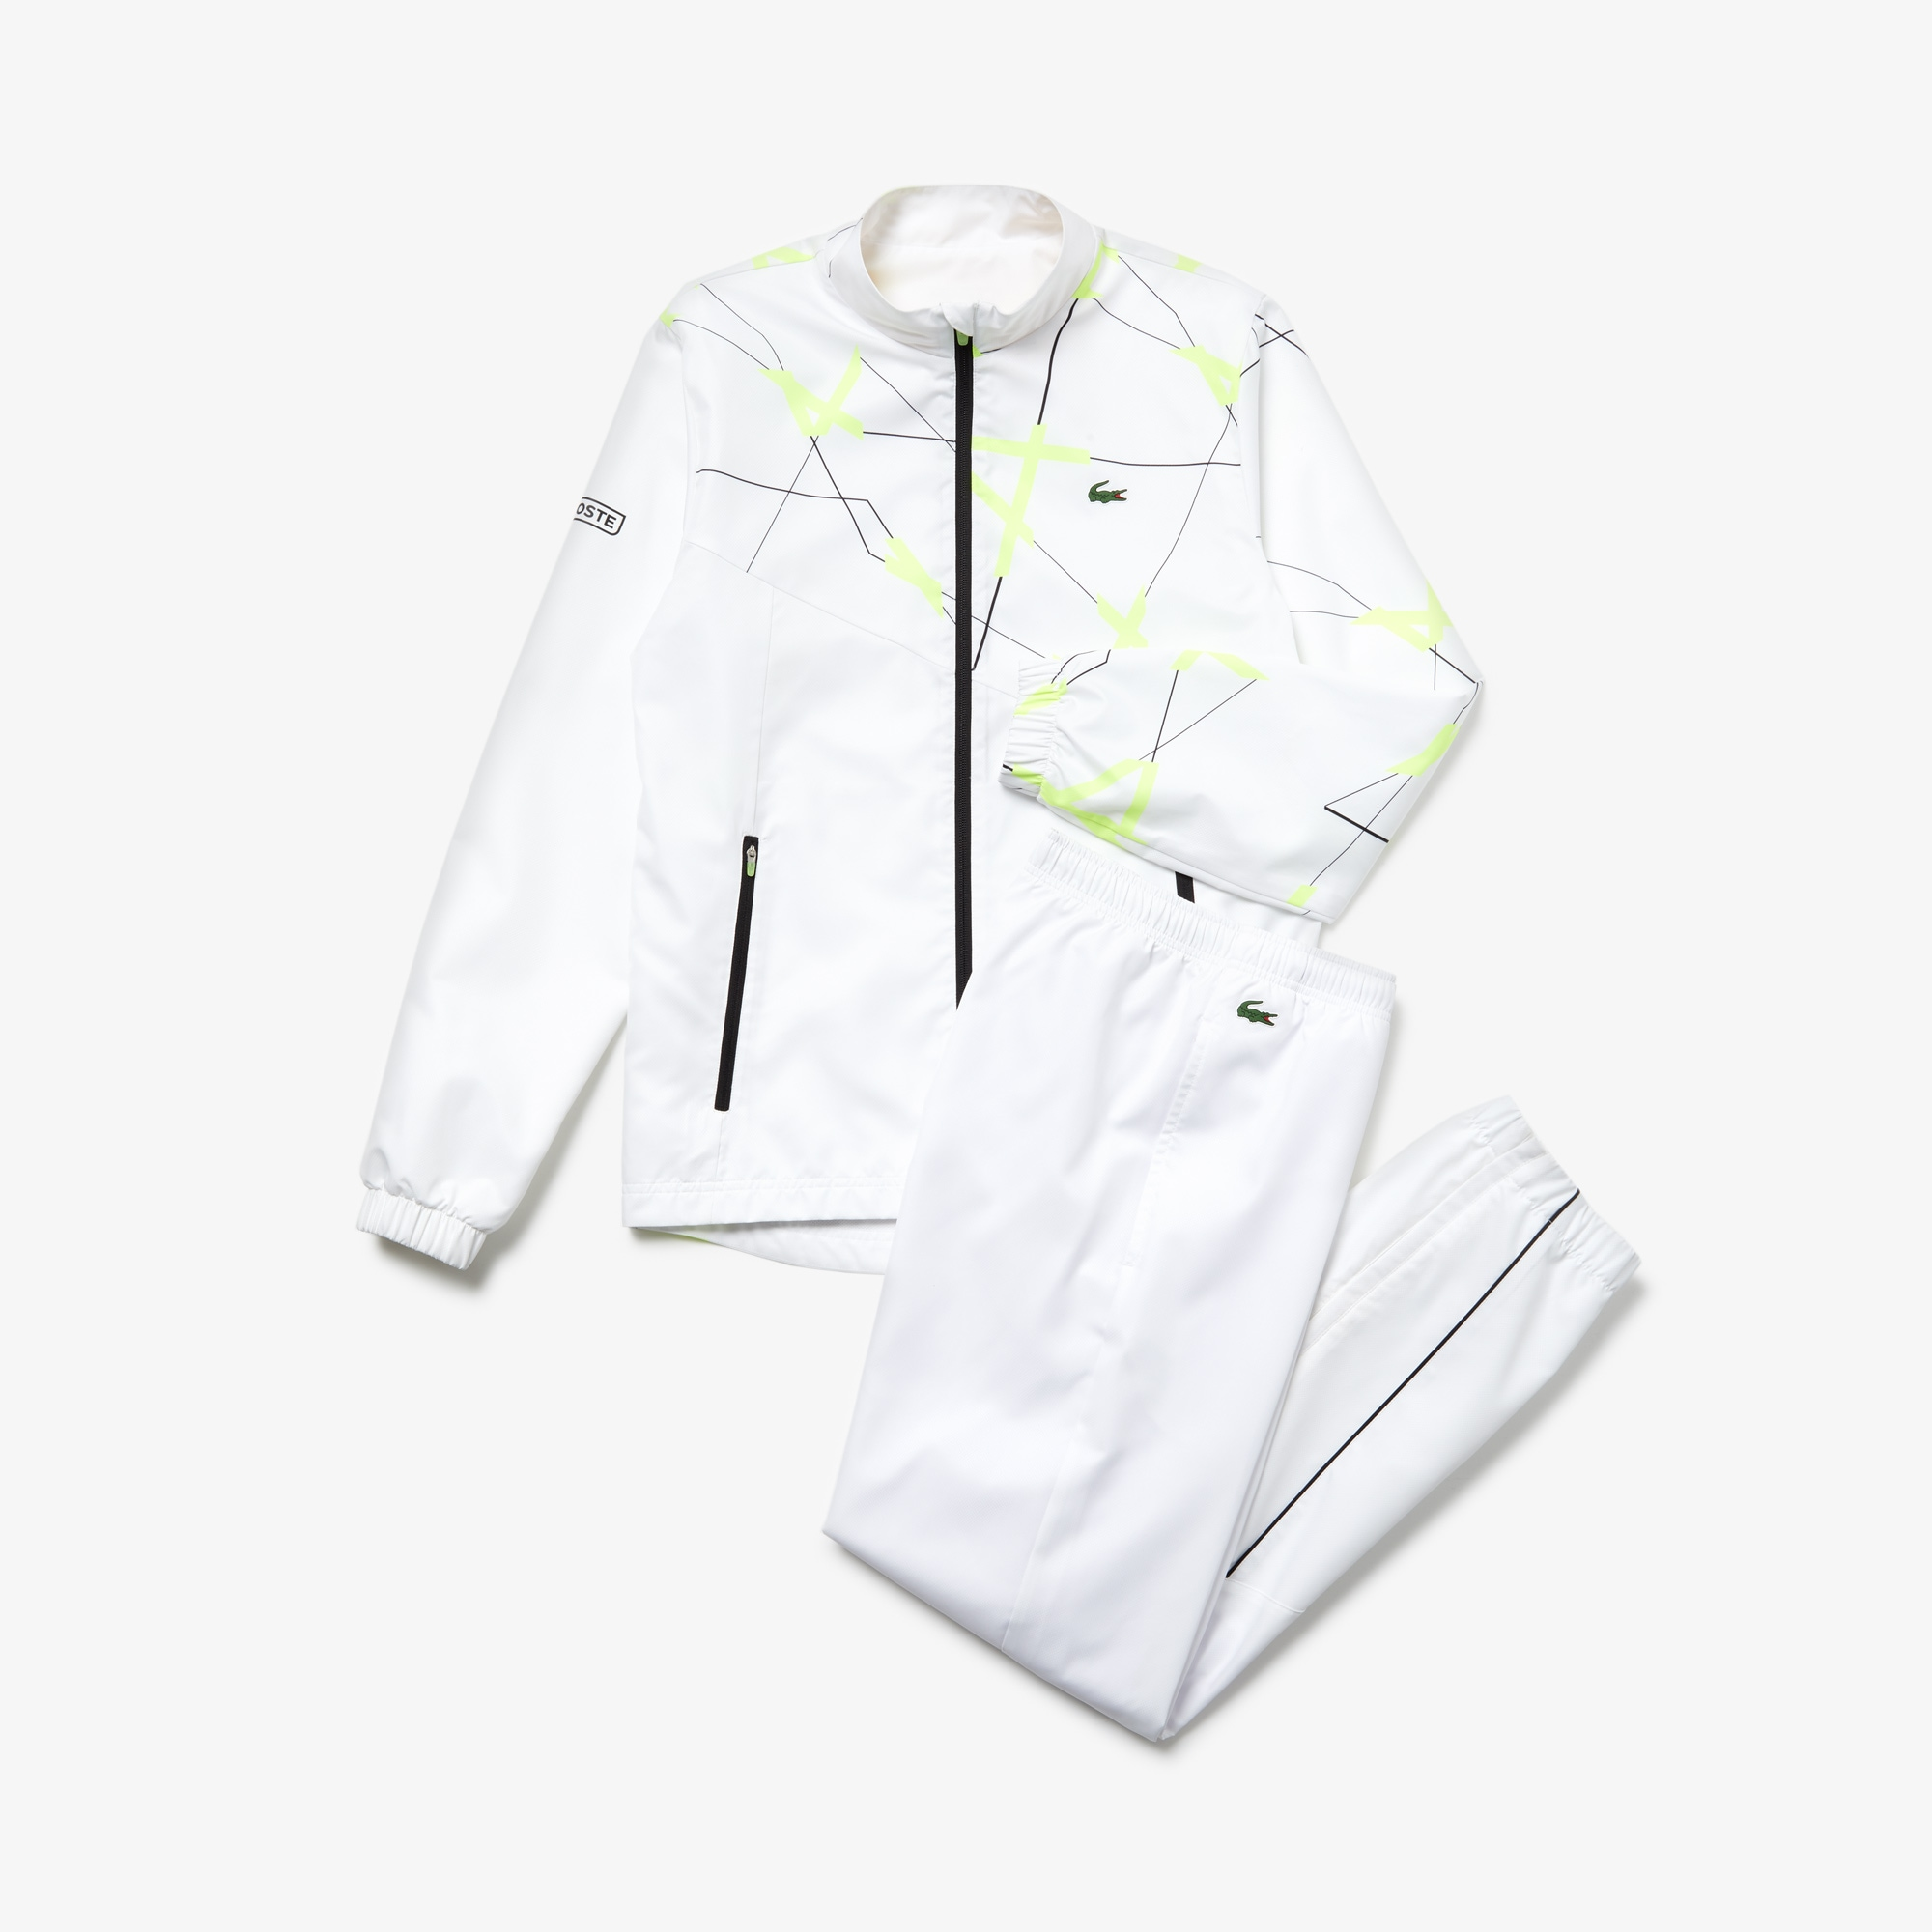 Men's SPORT Graphic Print Tennis Track Suit